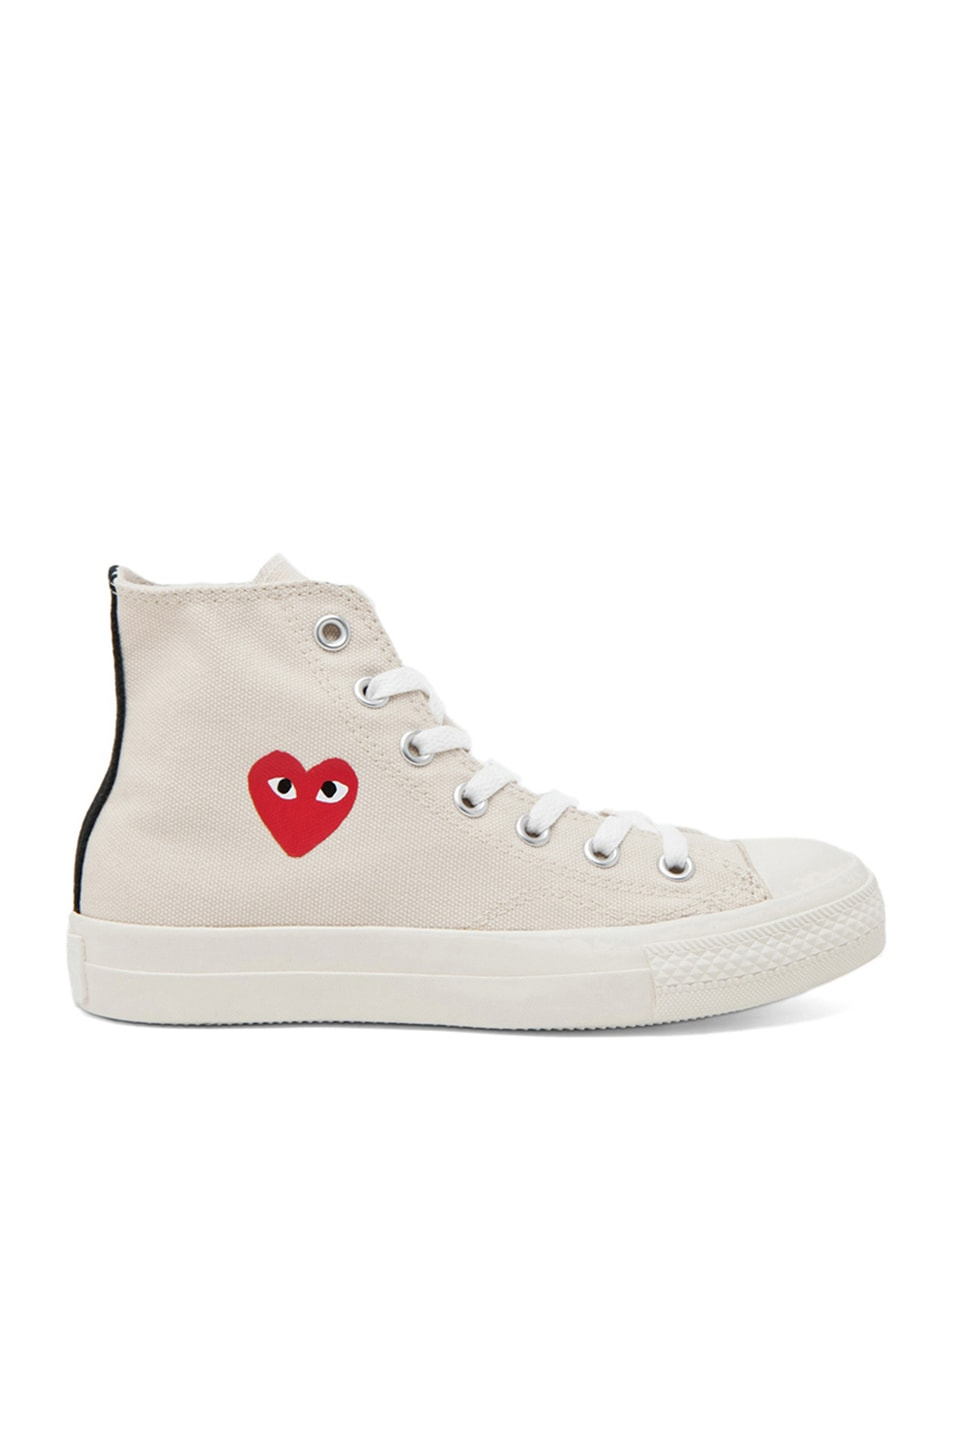 cdg play converse small heart